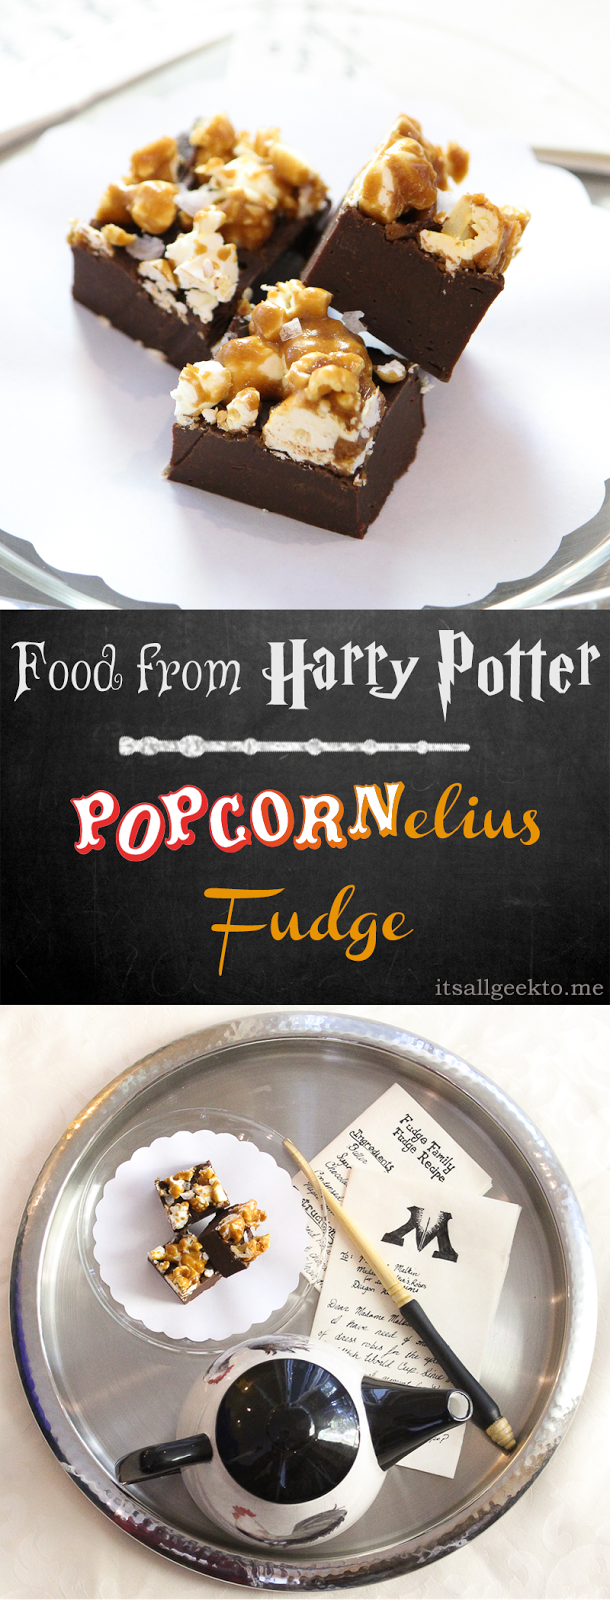 This sweet and salty Harry Potter fudge comes together quickly - perfect for a Hogwarts party. Dark chocolate, caramel, sea salt and popcorn combine into a delectable treat.